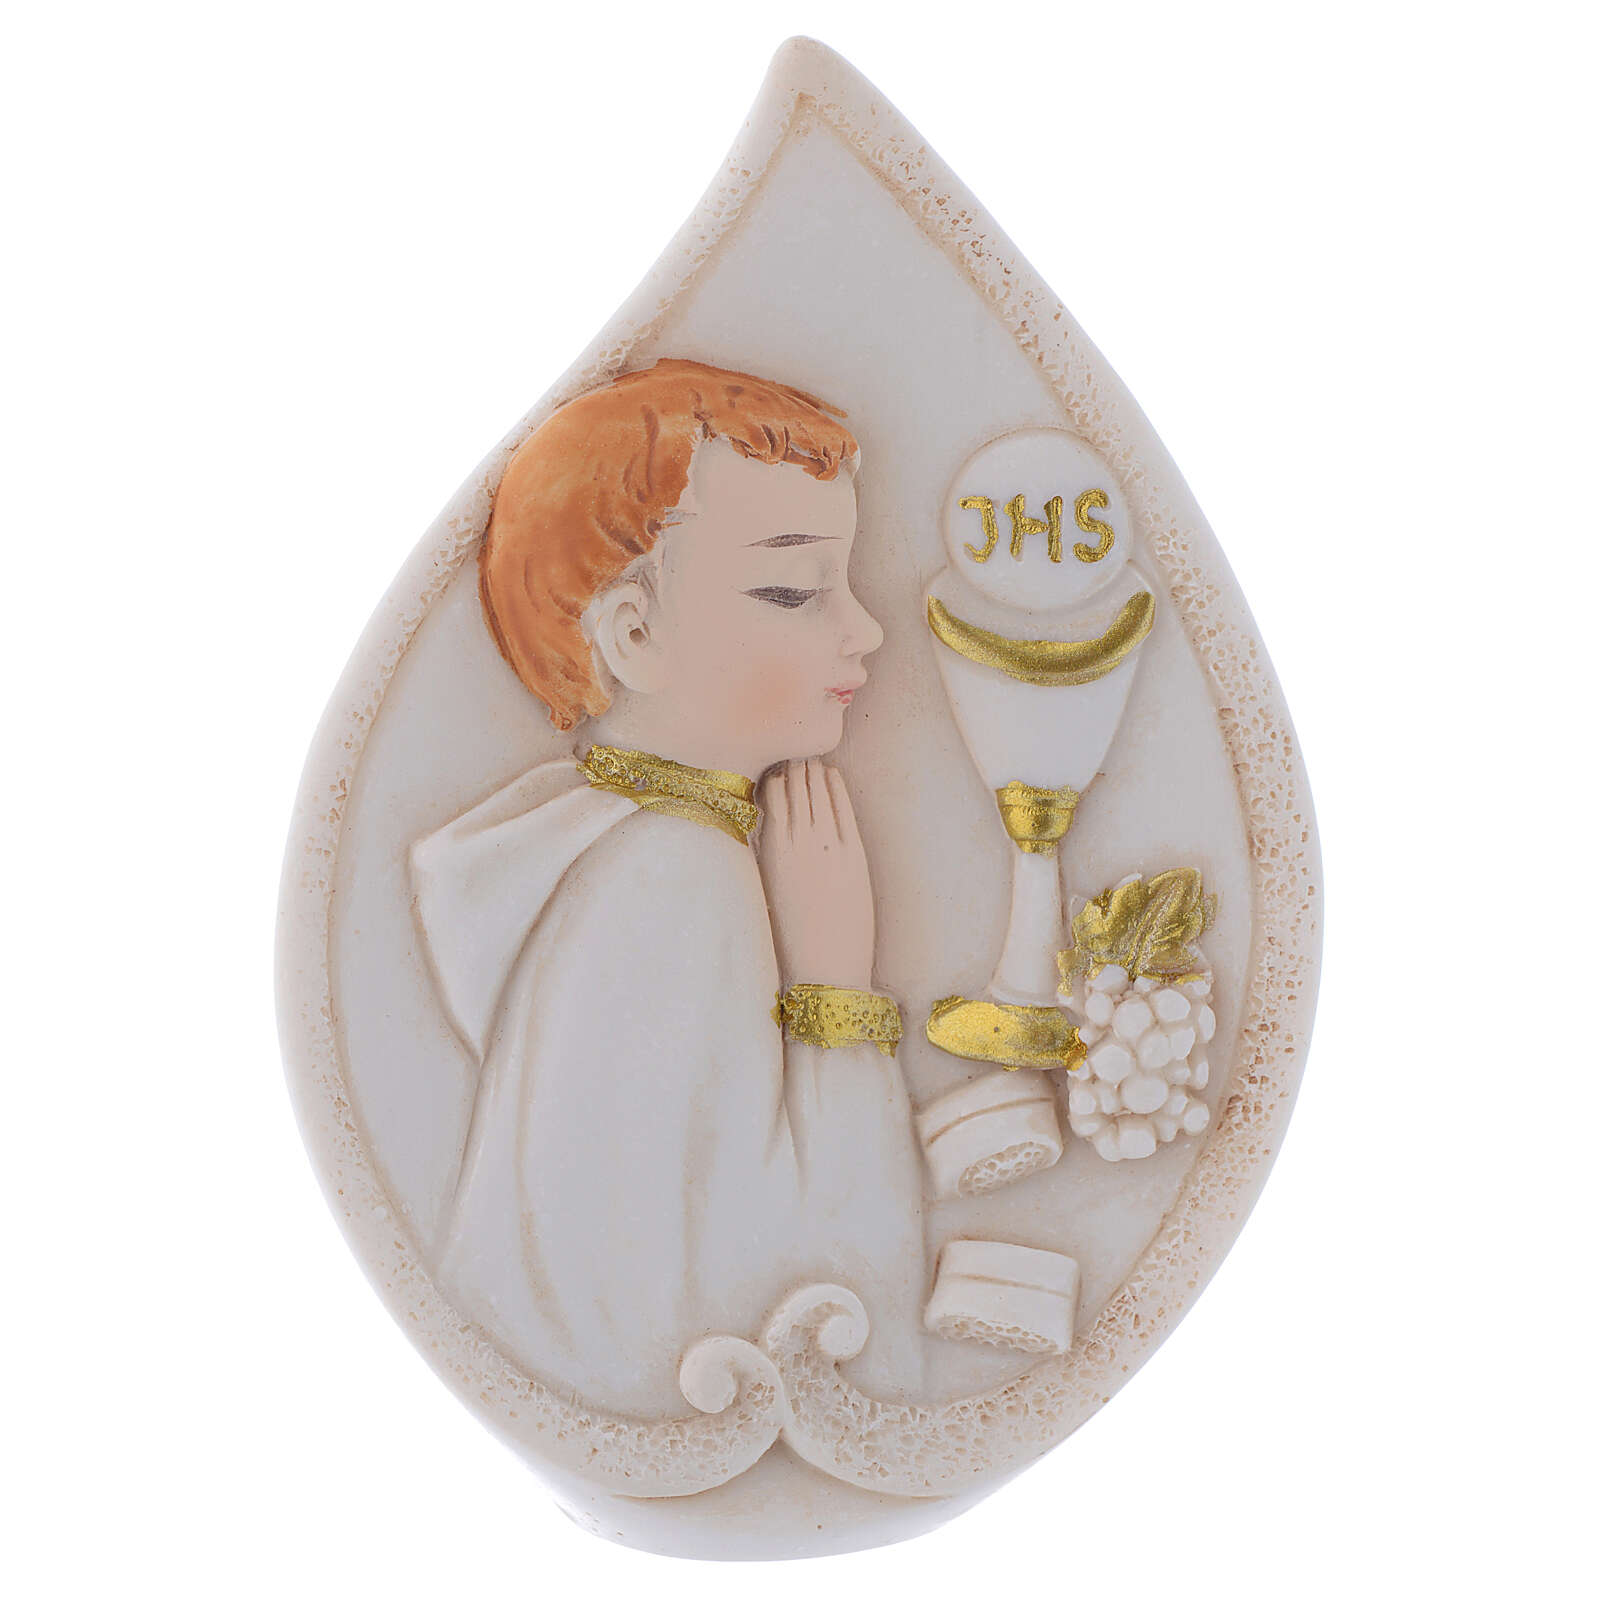 Holy Communion souvenir drop with Boy 4 in 3